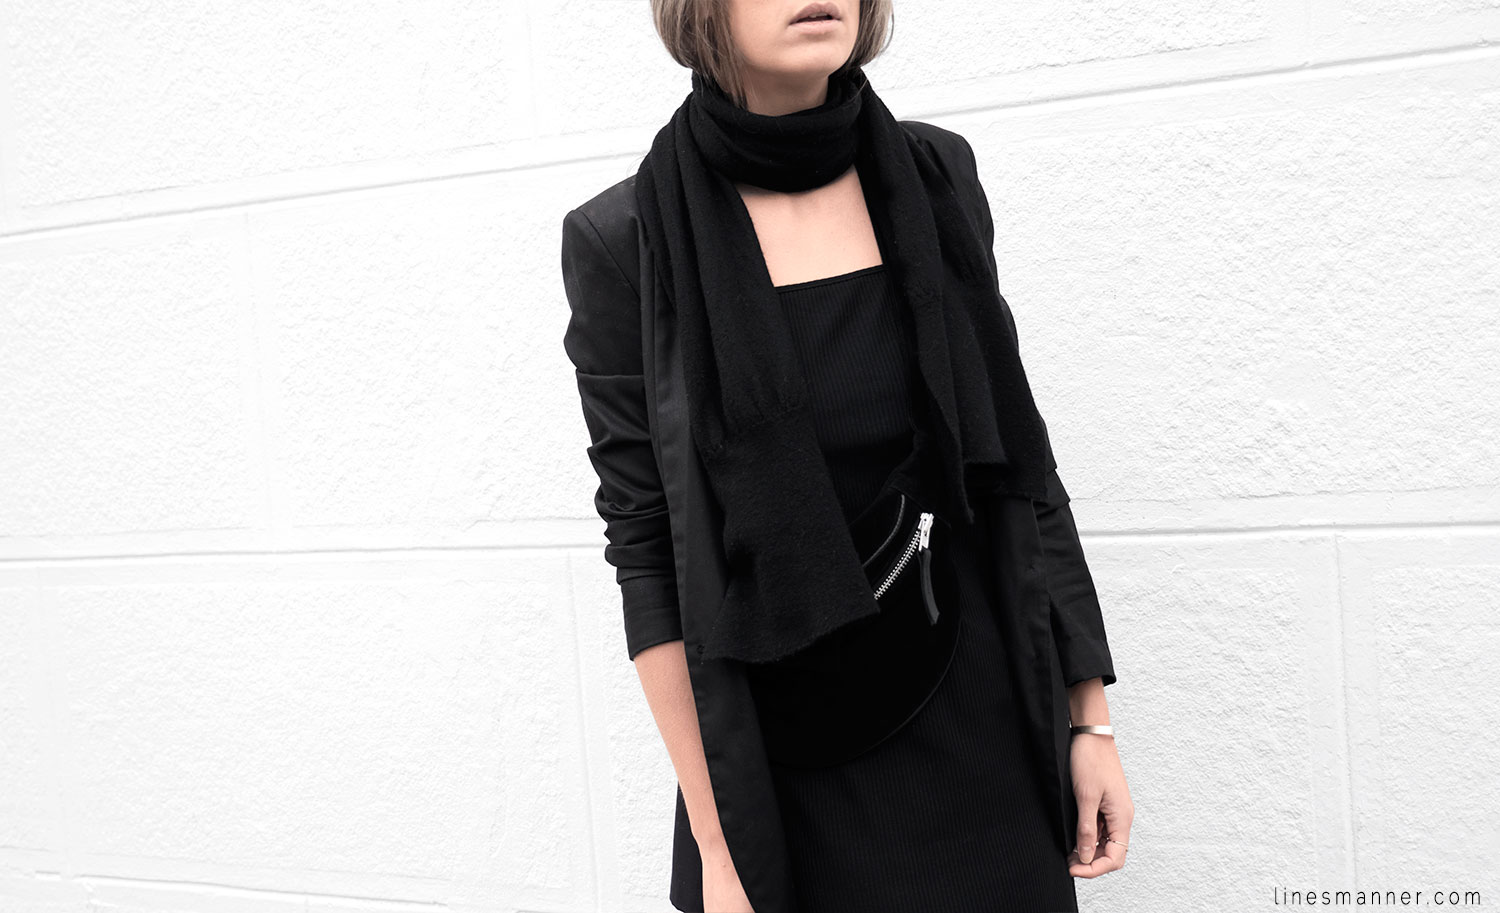 Lines-Manner-Black-Relaxed-Tone_on_Tone-Monochrome-Minimal-Sophistication-Comfort-Modern-Simplicity-Casual-Sporty_Luxe-Slit_Dress-Thrid_Form-Blazer-Essentials-Details-Basics-Timeless-Verstatile-Staple-Wardrobe-Sleek-Clean_Lines-All_Black_Everything-3